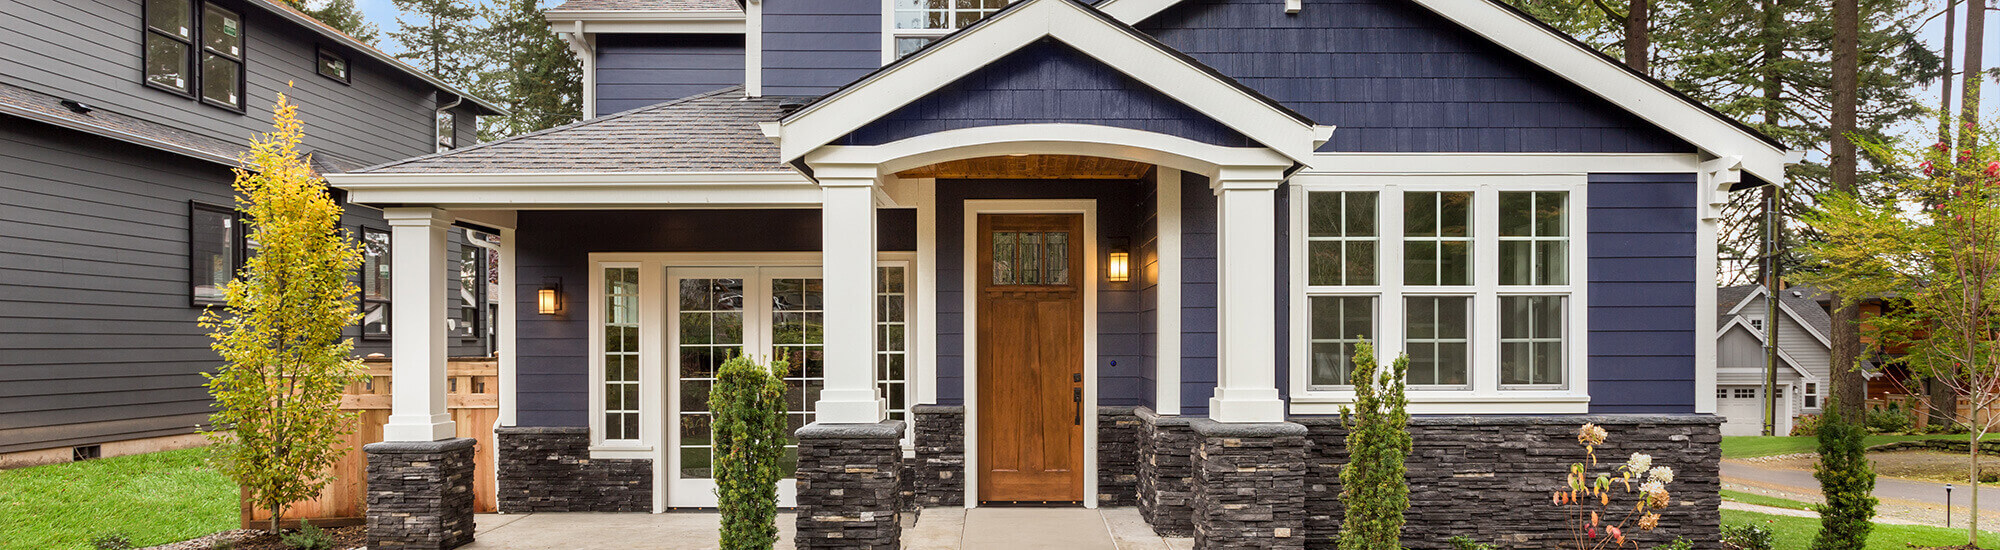 The front of a Blue House with windows and door installed by Kempenfelt Windows & Doors